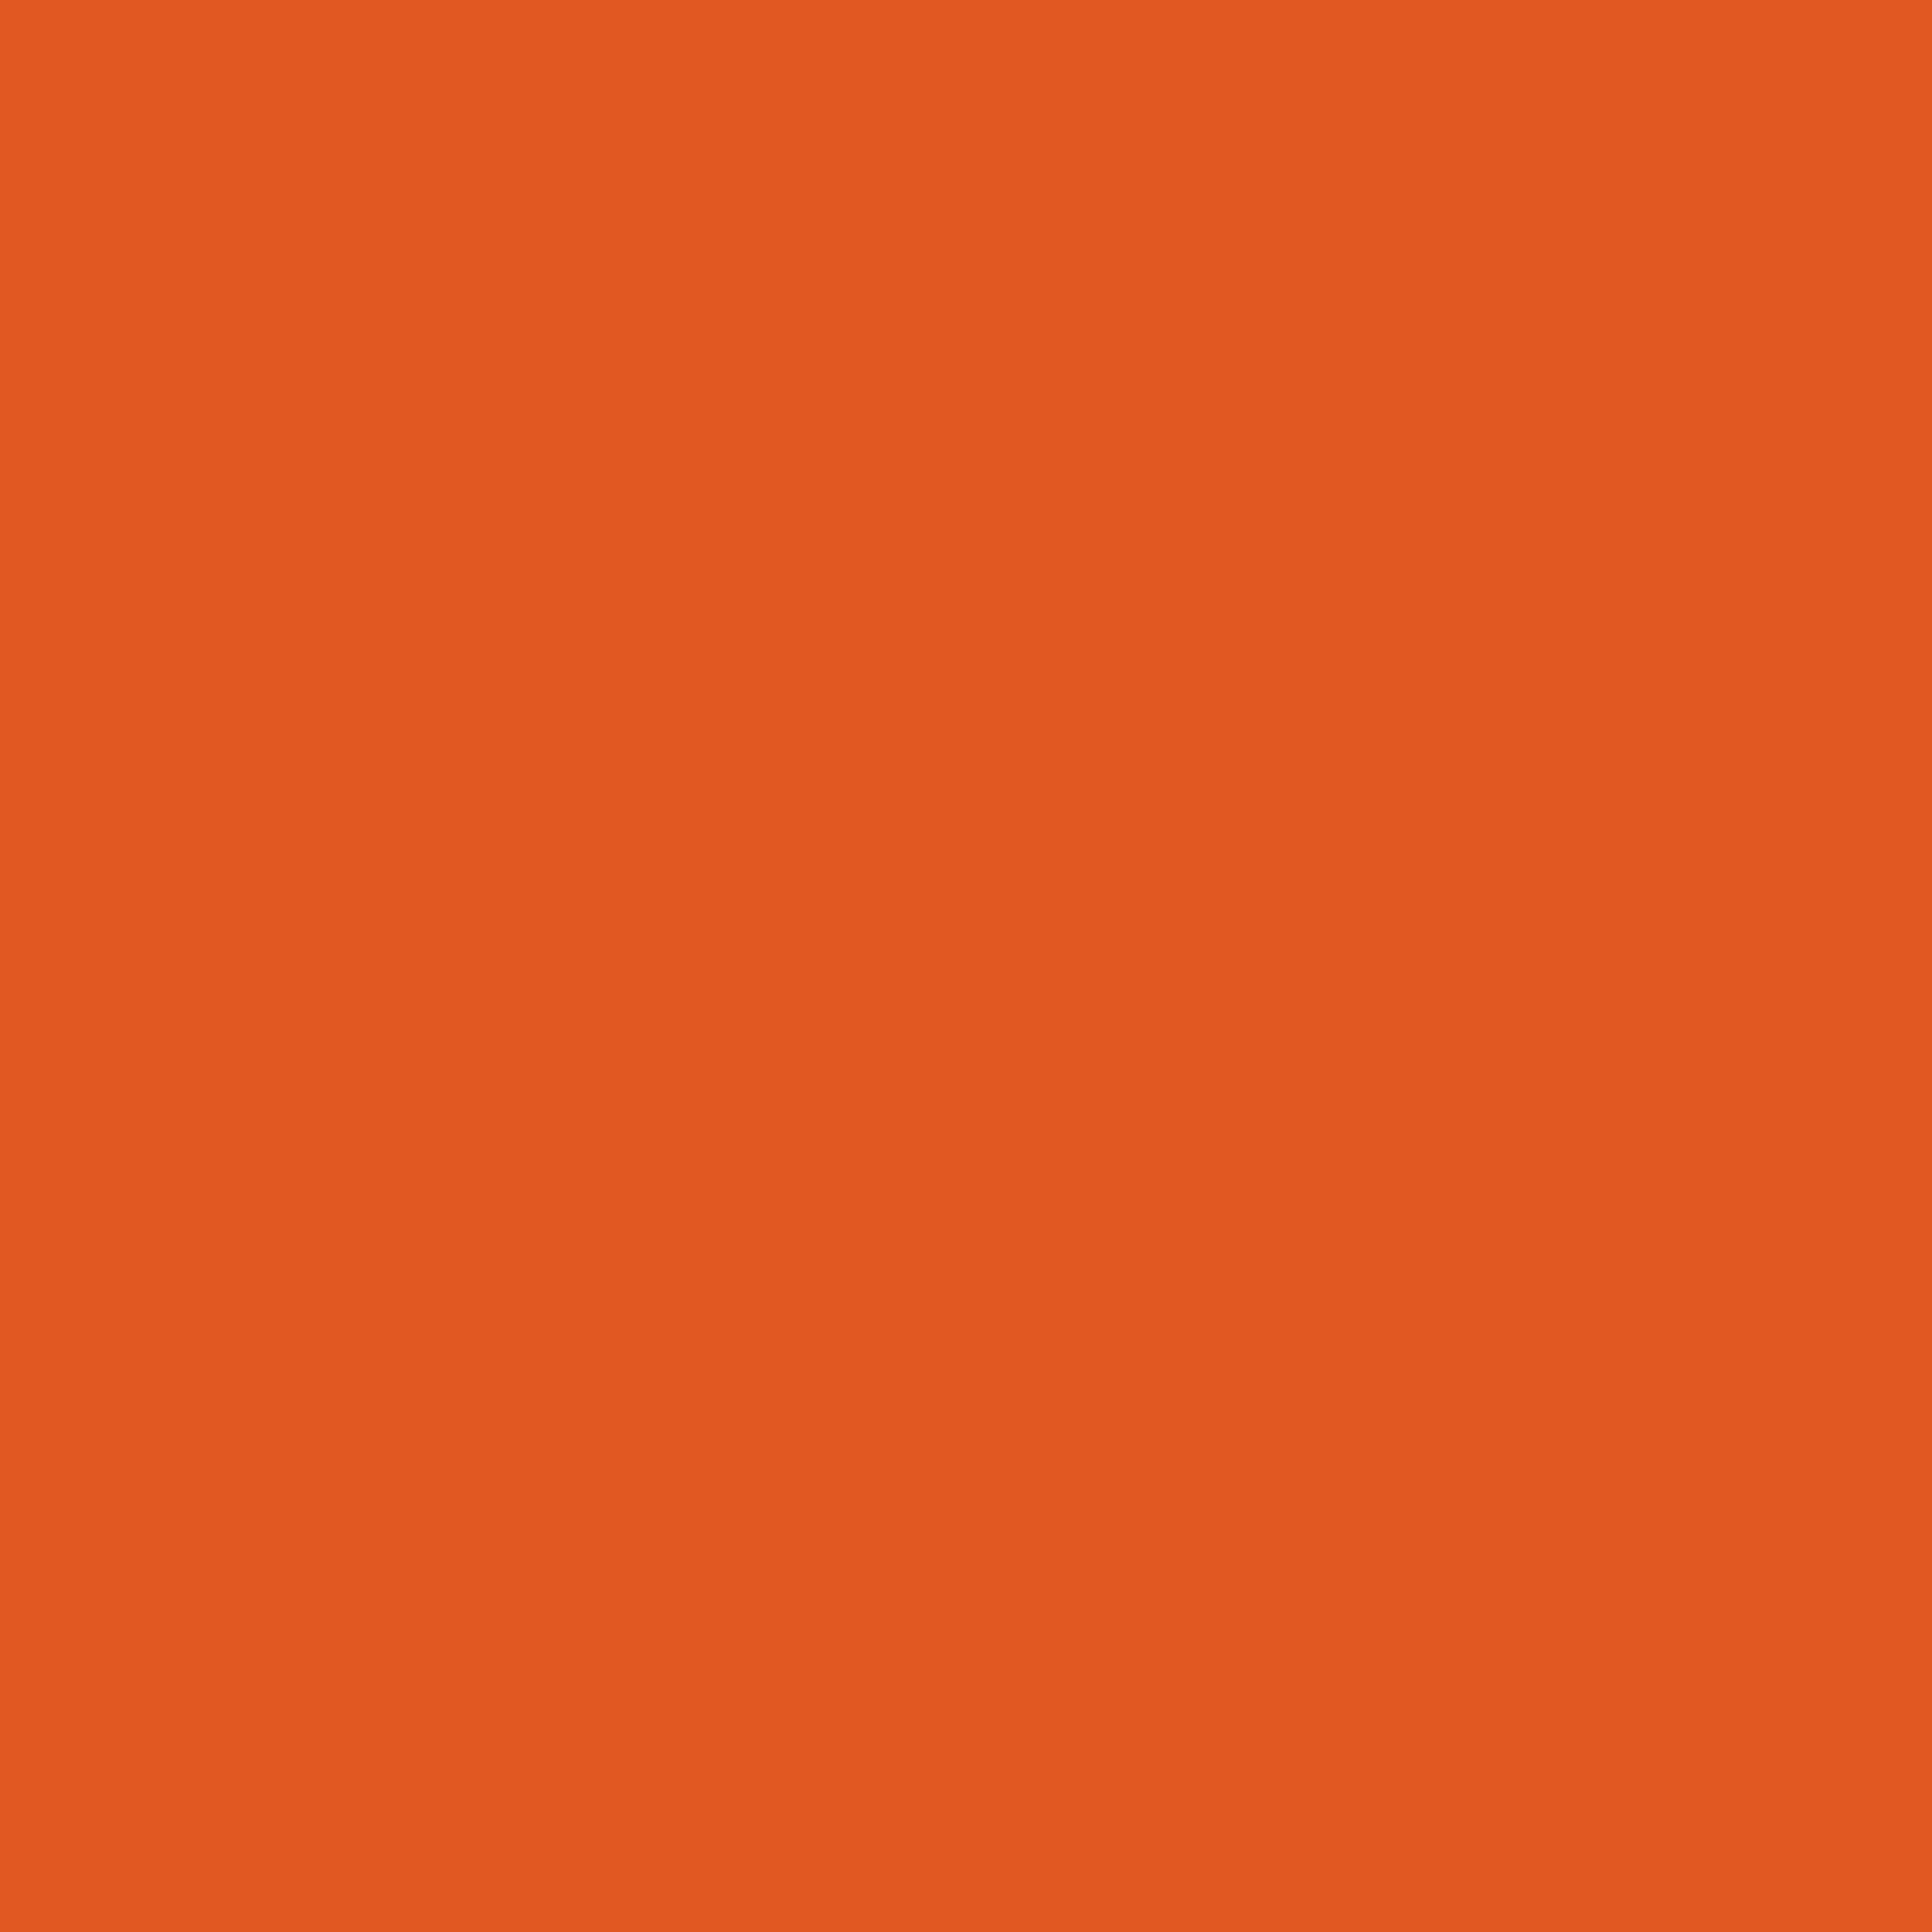 2048x2048 Flame Solid Color Background